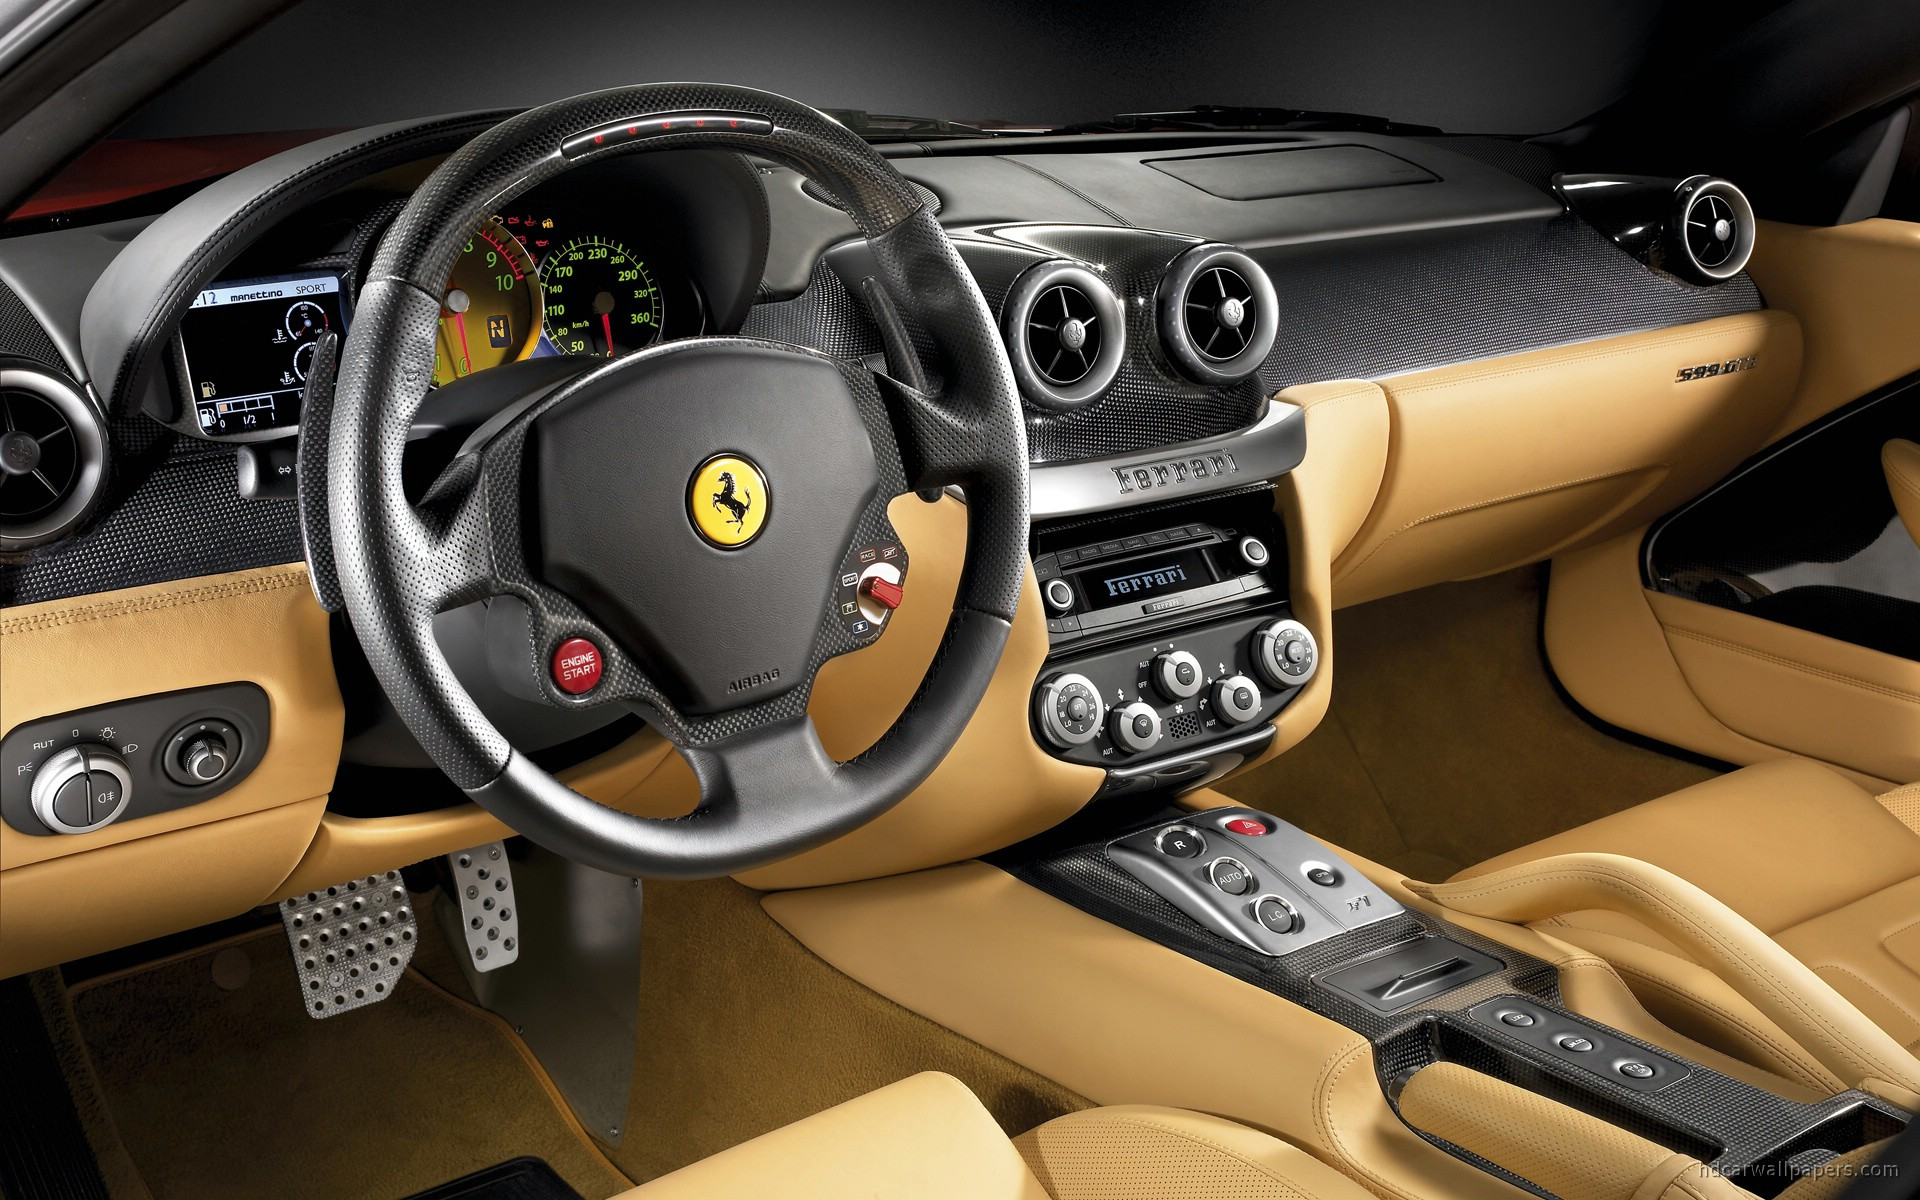 ferrari 599 gtb interior wallpaper hd car wallpapers id 816. Black Bedroom Furniture Sets. Home Design Ideas